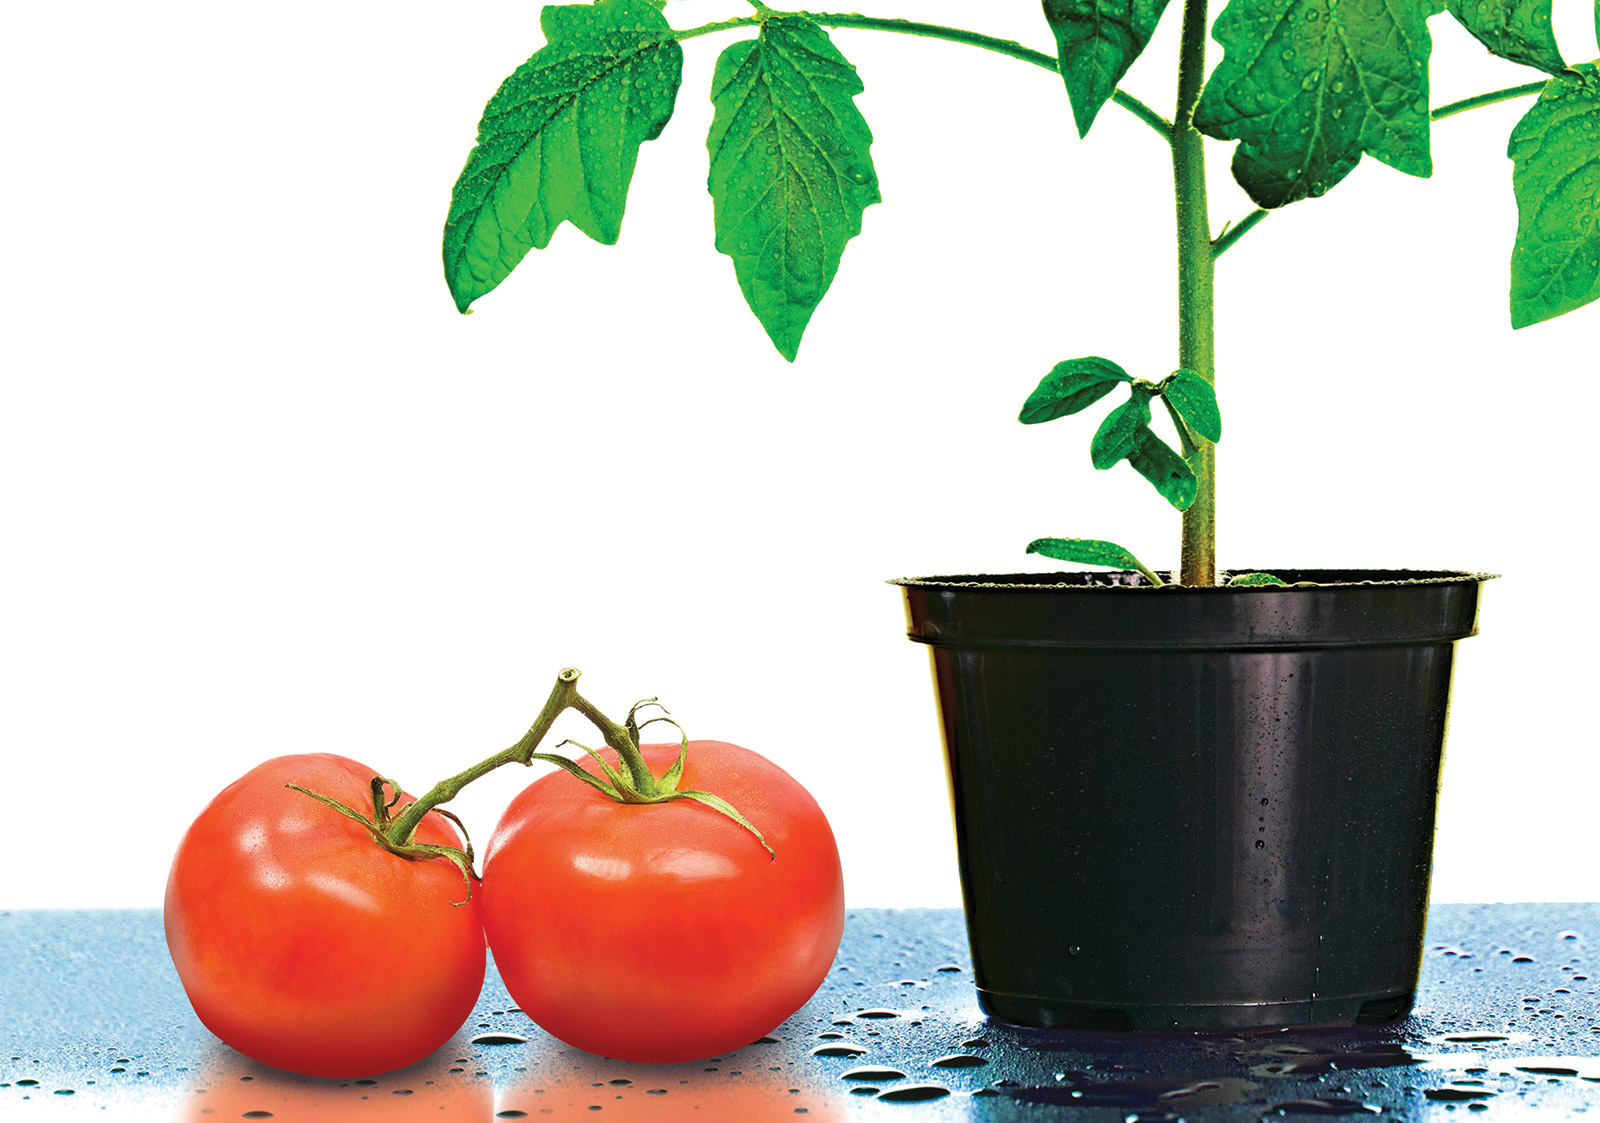 tomatosphere feature post image